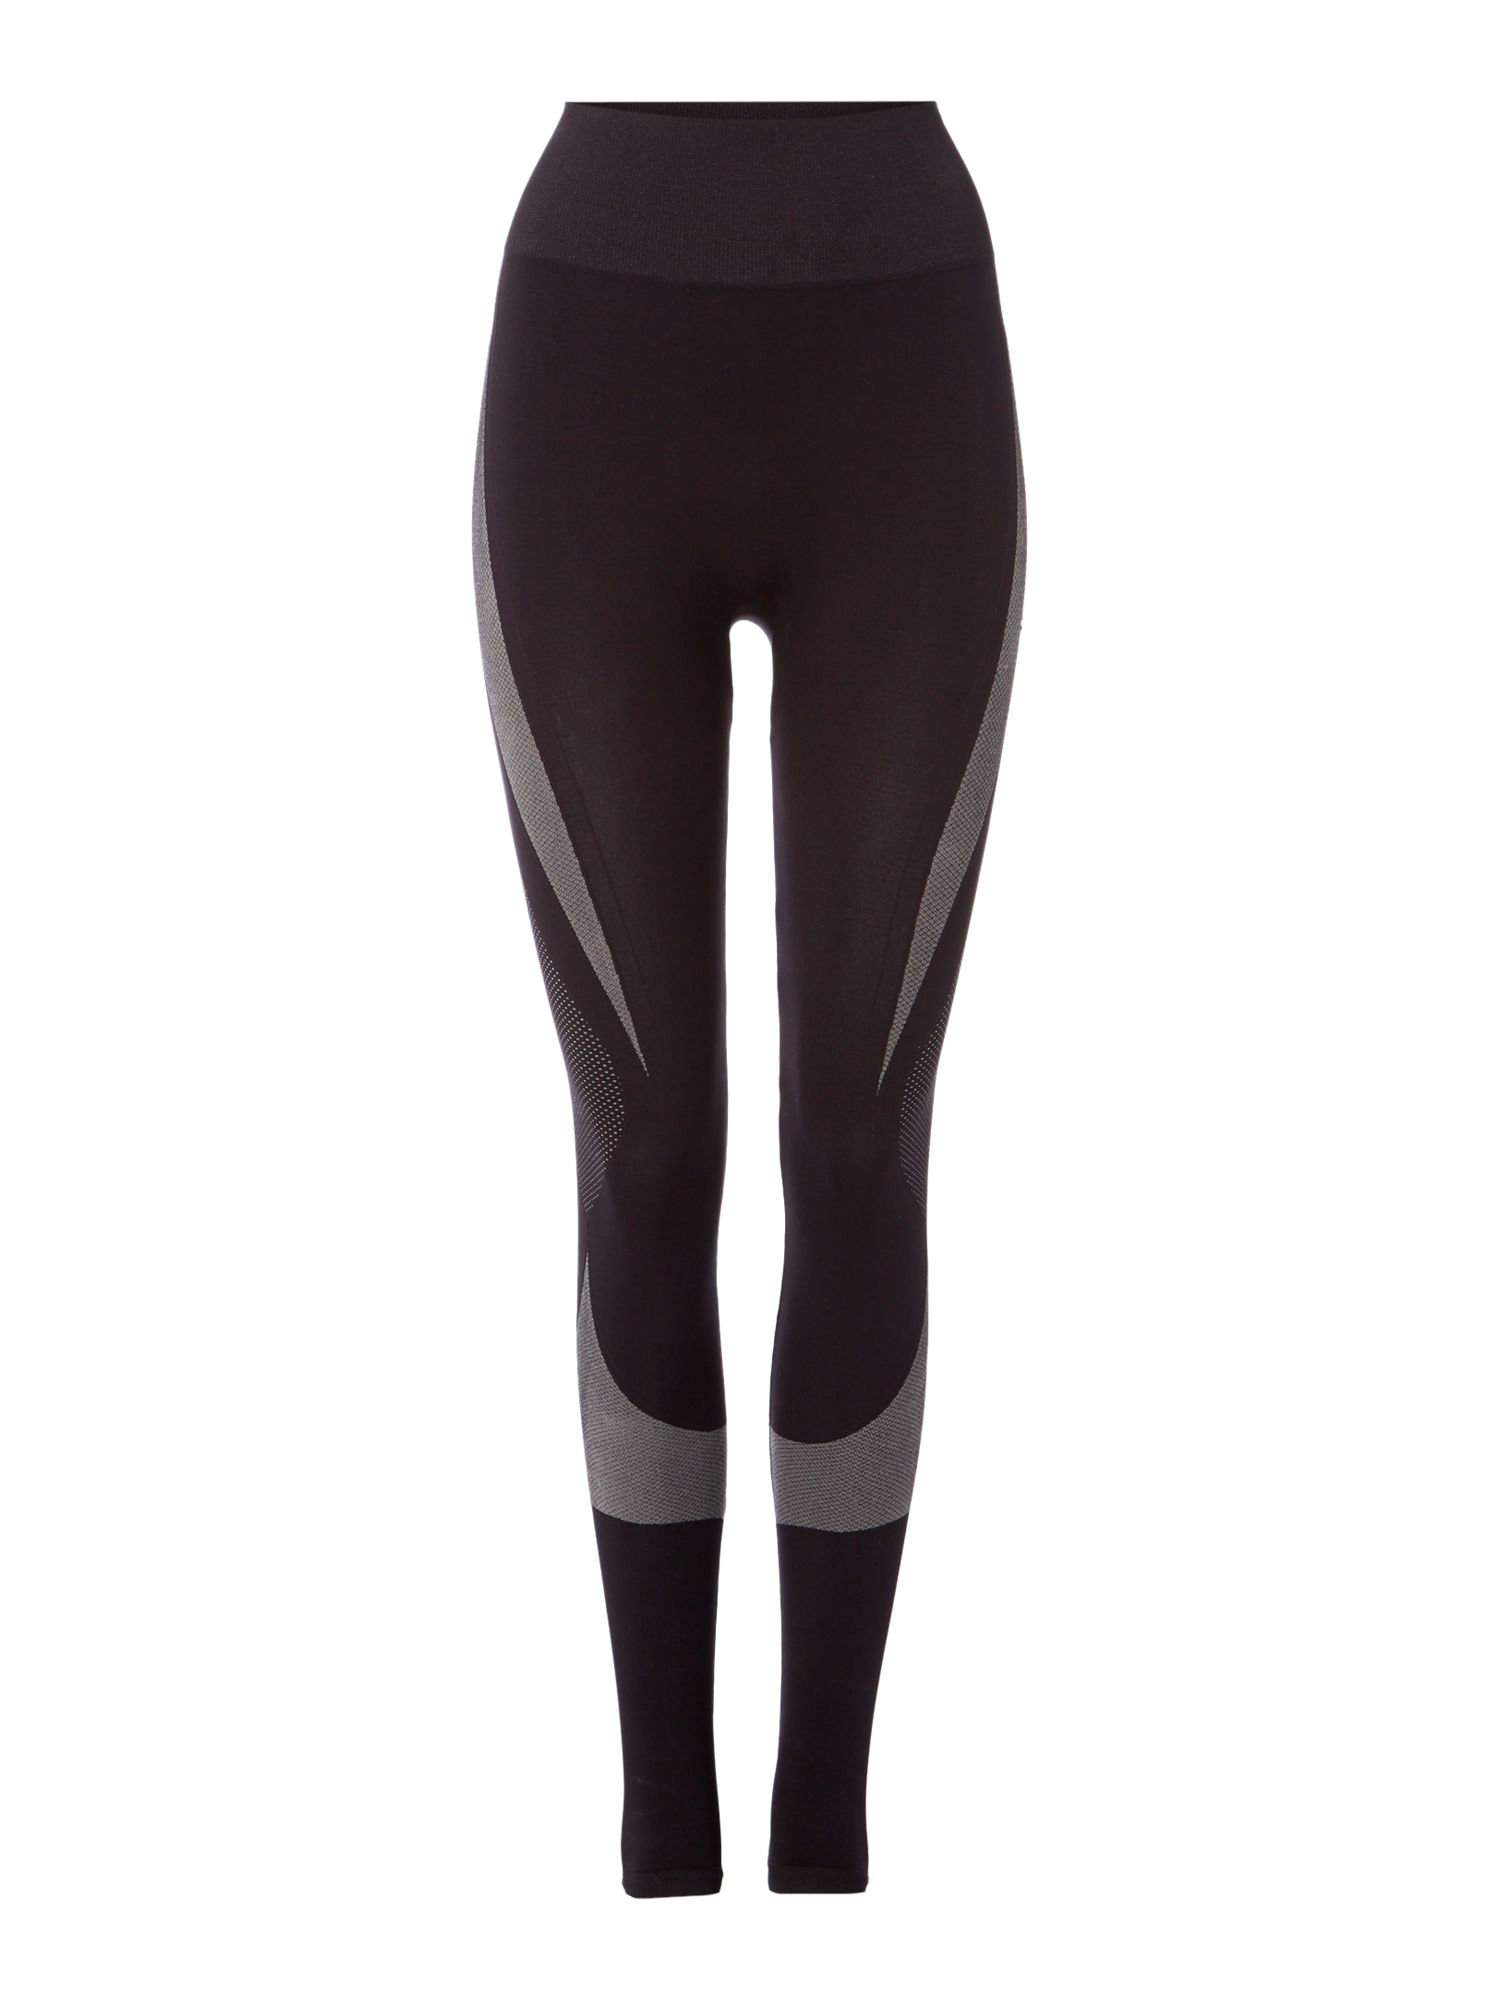 Label Lab Tron seamless tight legging, Grey.